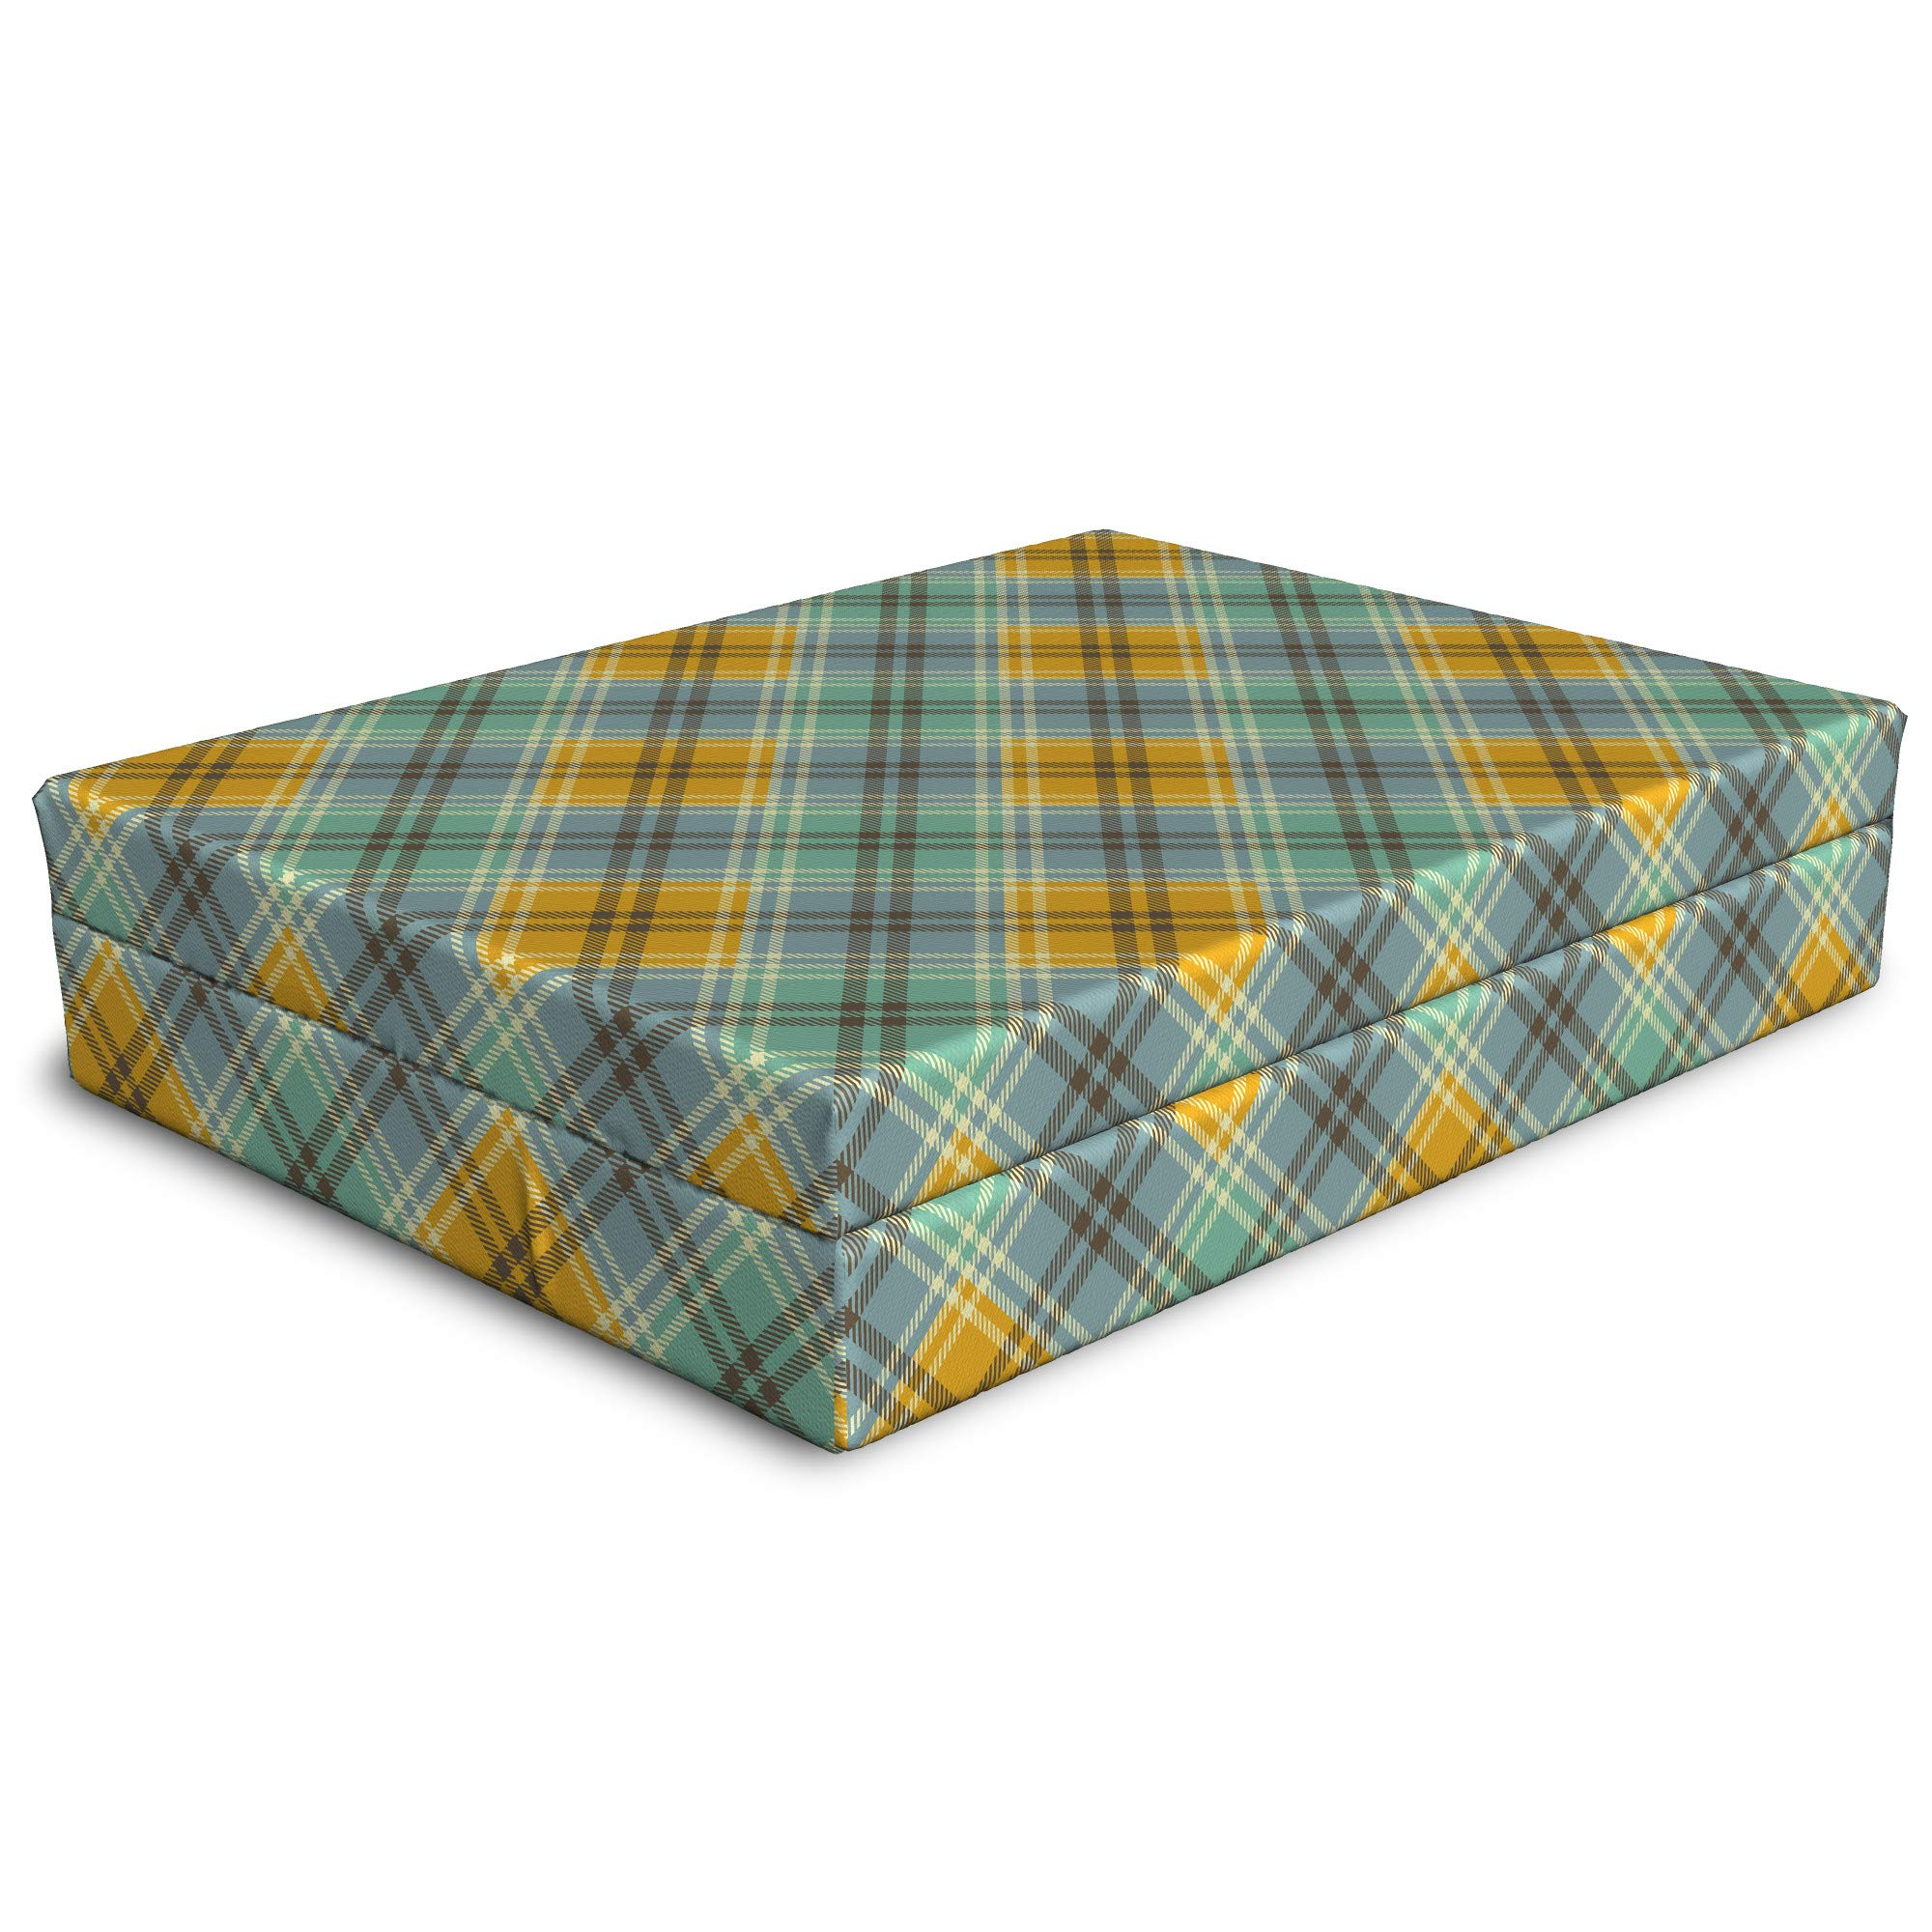 Lunarable Tartan Dog Bed, Continuous Pattern of Tricolor Traditional Rhombuses Classical Illustration, Dog Pillow with High Resilience Visco Foam for Pets, 32'' x 24'' x 6'', Multicolor by Lunarable (Image #1)